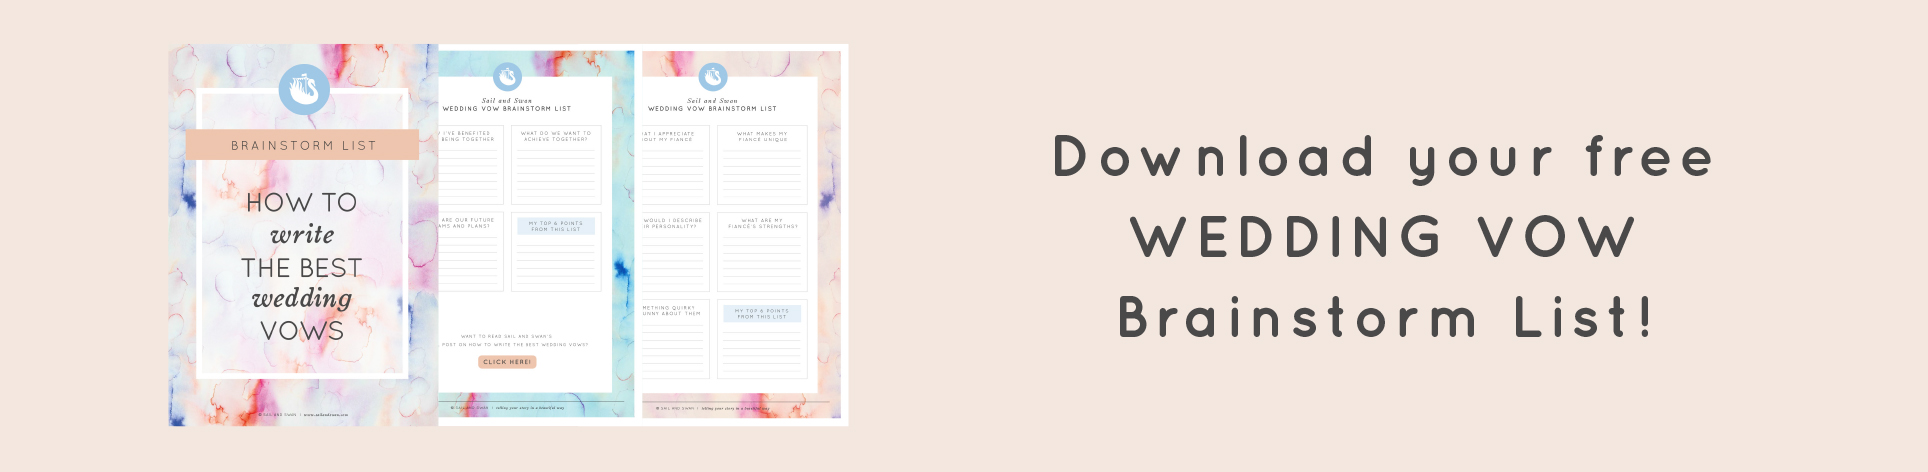 How to write the best wedding vows wedding vow examples and ideas by the way did you know that this blog comes with a free wedding vow brainstorm list simply click below to download and receive lots of other handy junglespirit Gallery